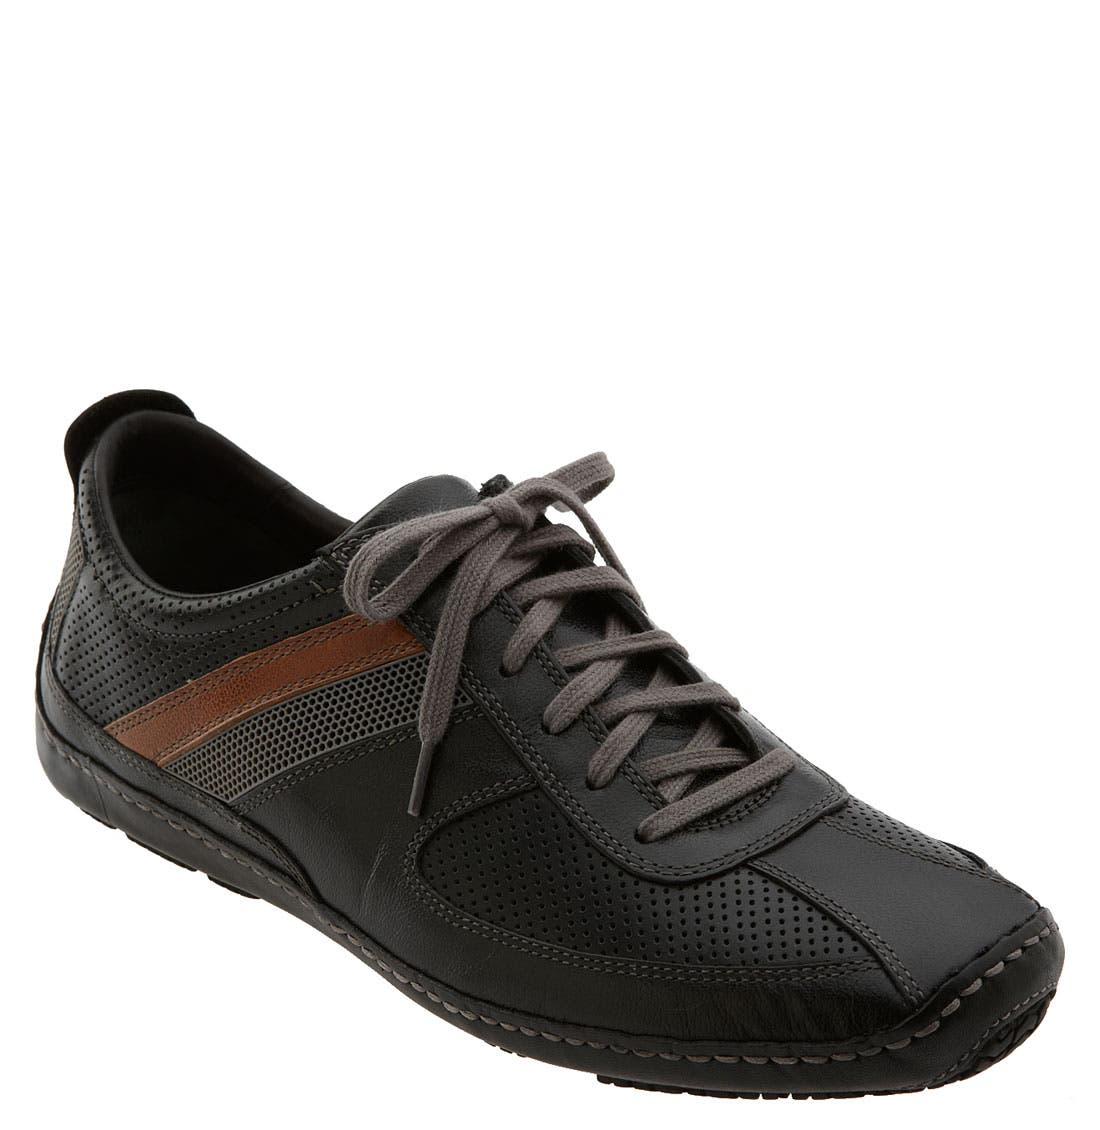 Alternate Image 1 Selected - Cole Haan 'Air Ryder' Oxford